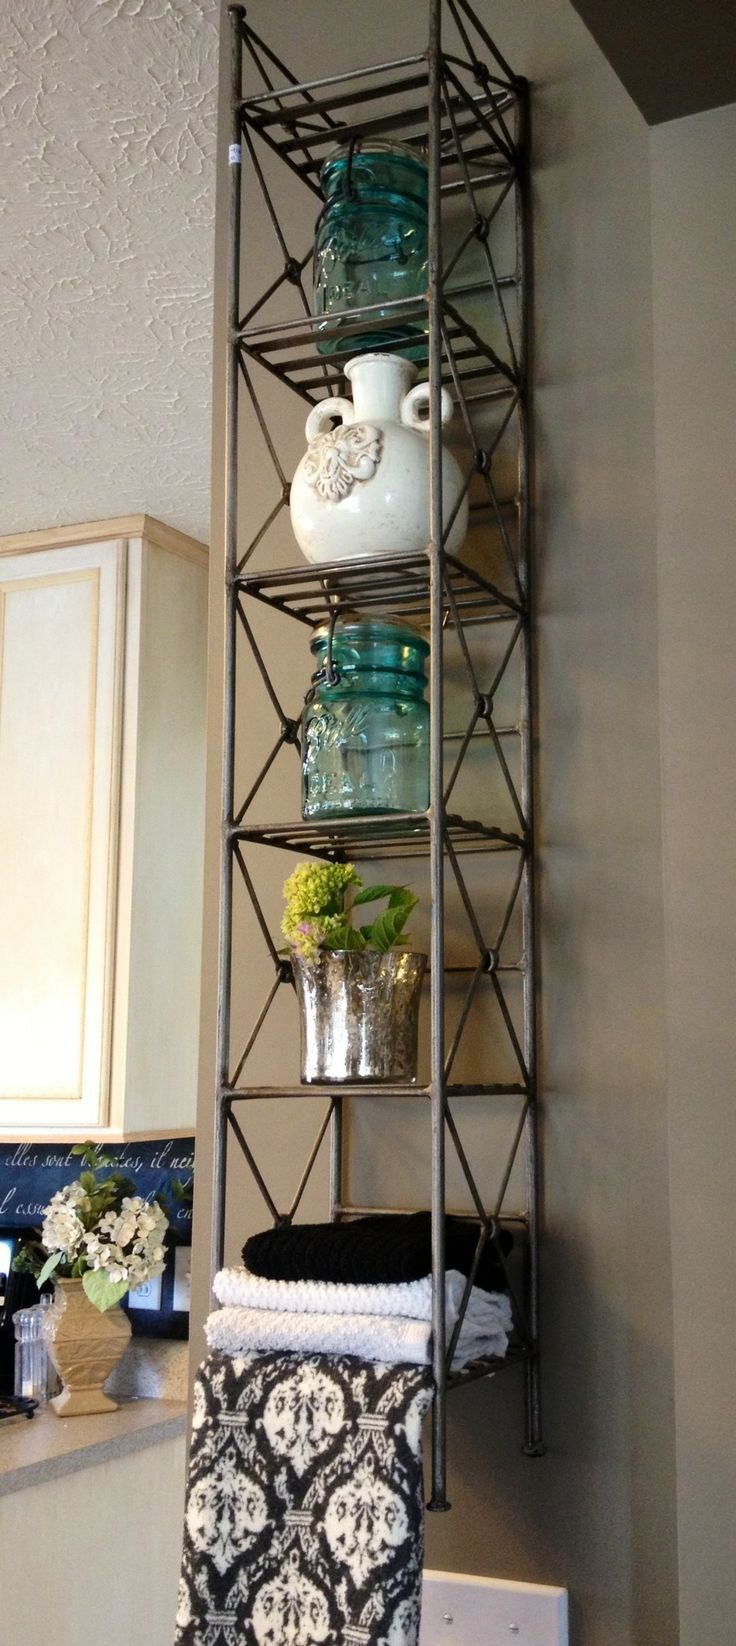 upcycling cd tower as a shelf shelf ideas towels and